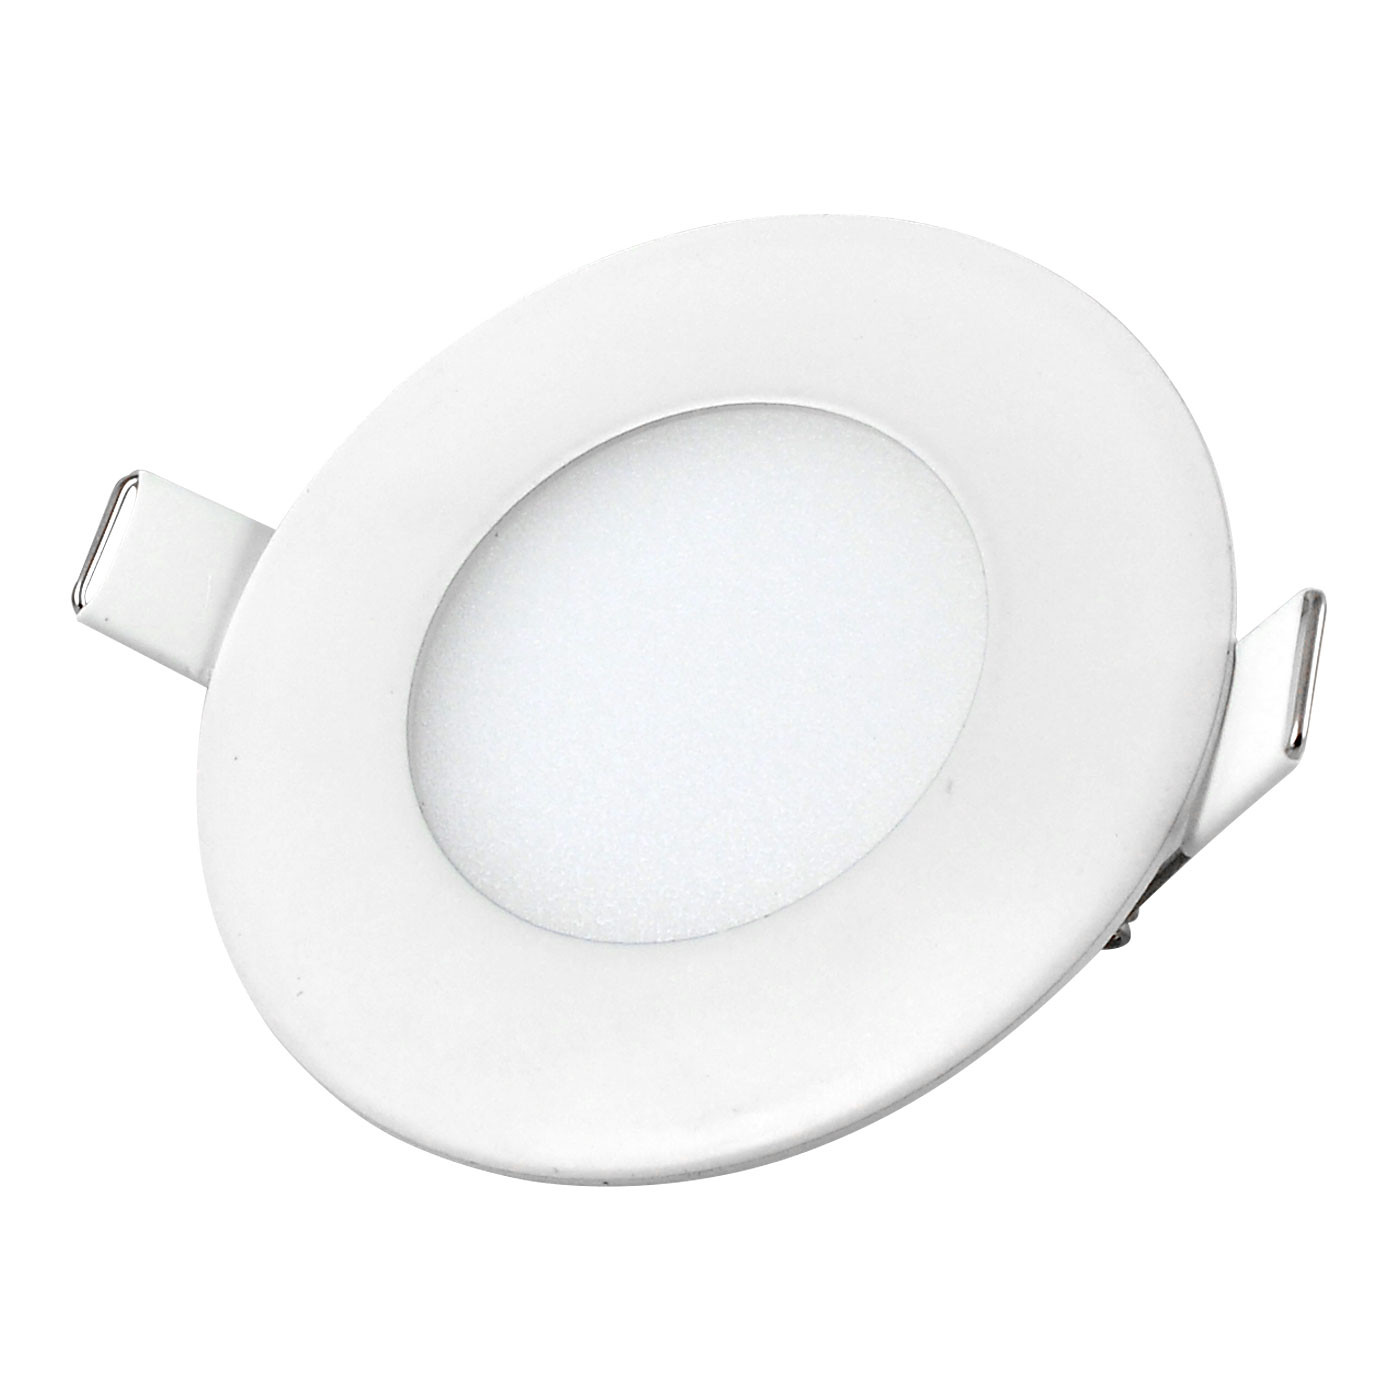 MENGS® 3W Round LED Recessed Ceiling Panel Light 15x 2835 SMD LEDs LED Bulb Lamp in Warm White Energy-saving Light